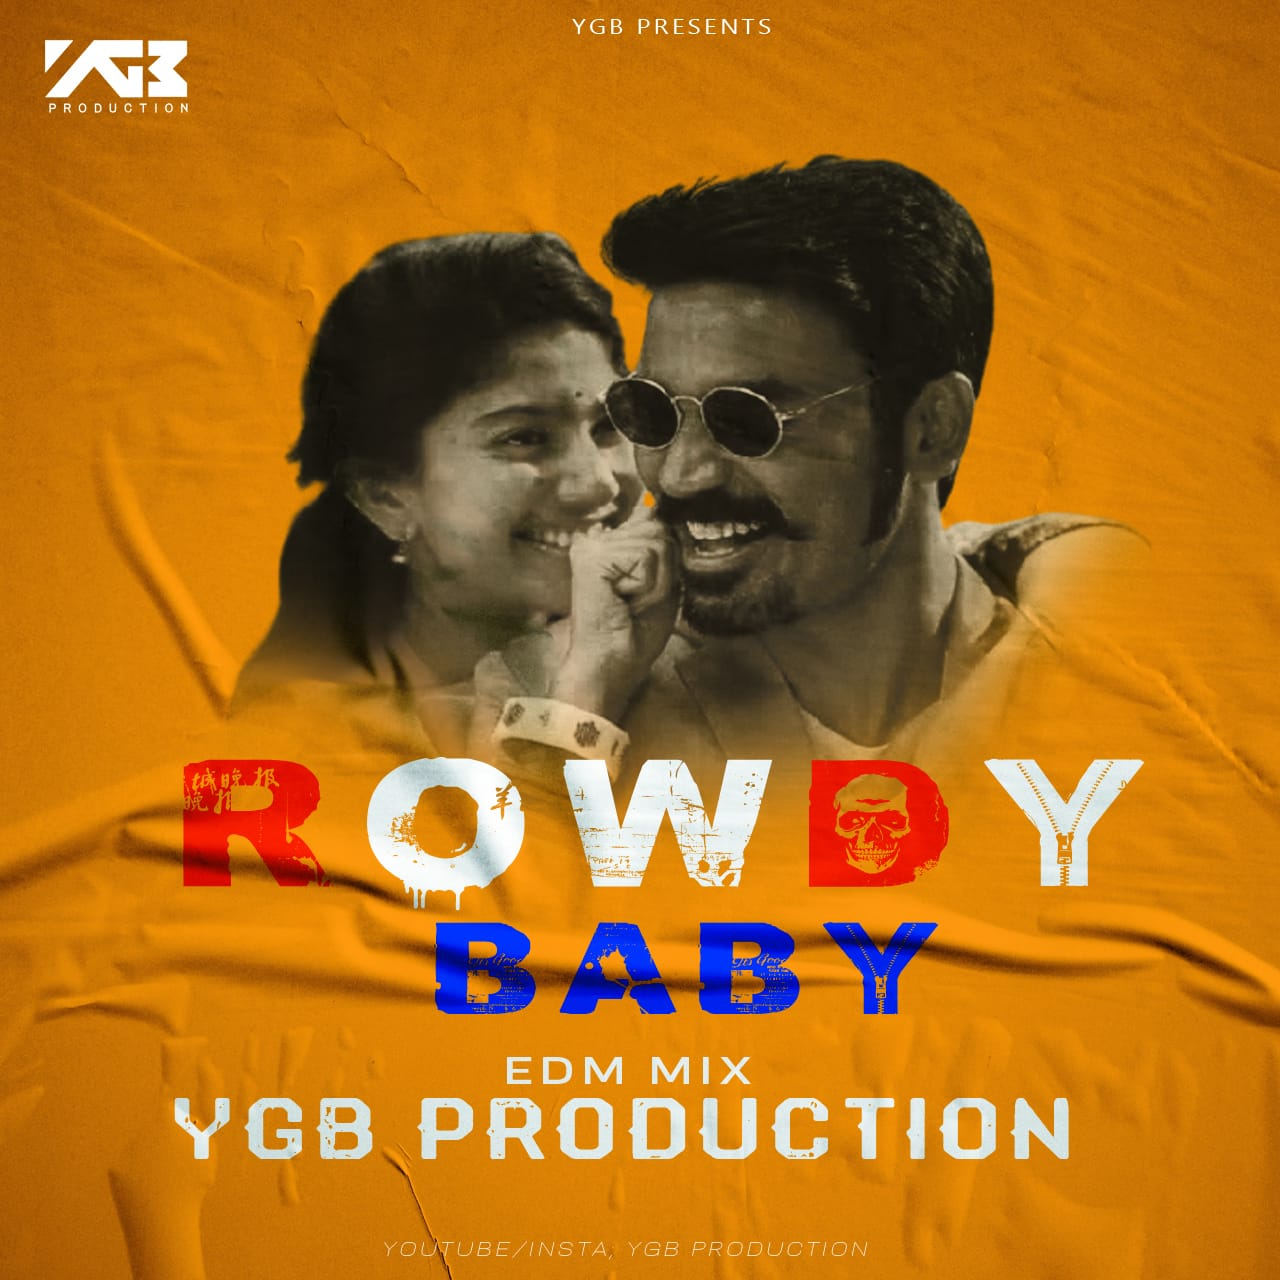 ROWDY BABY EDM MIX YGB PRODUCTION